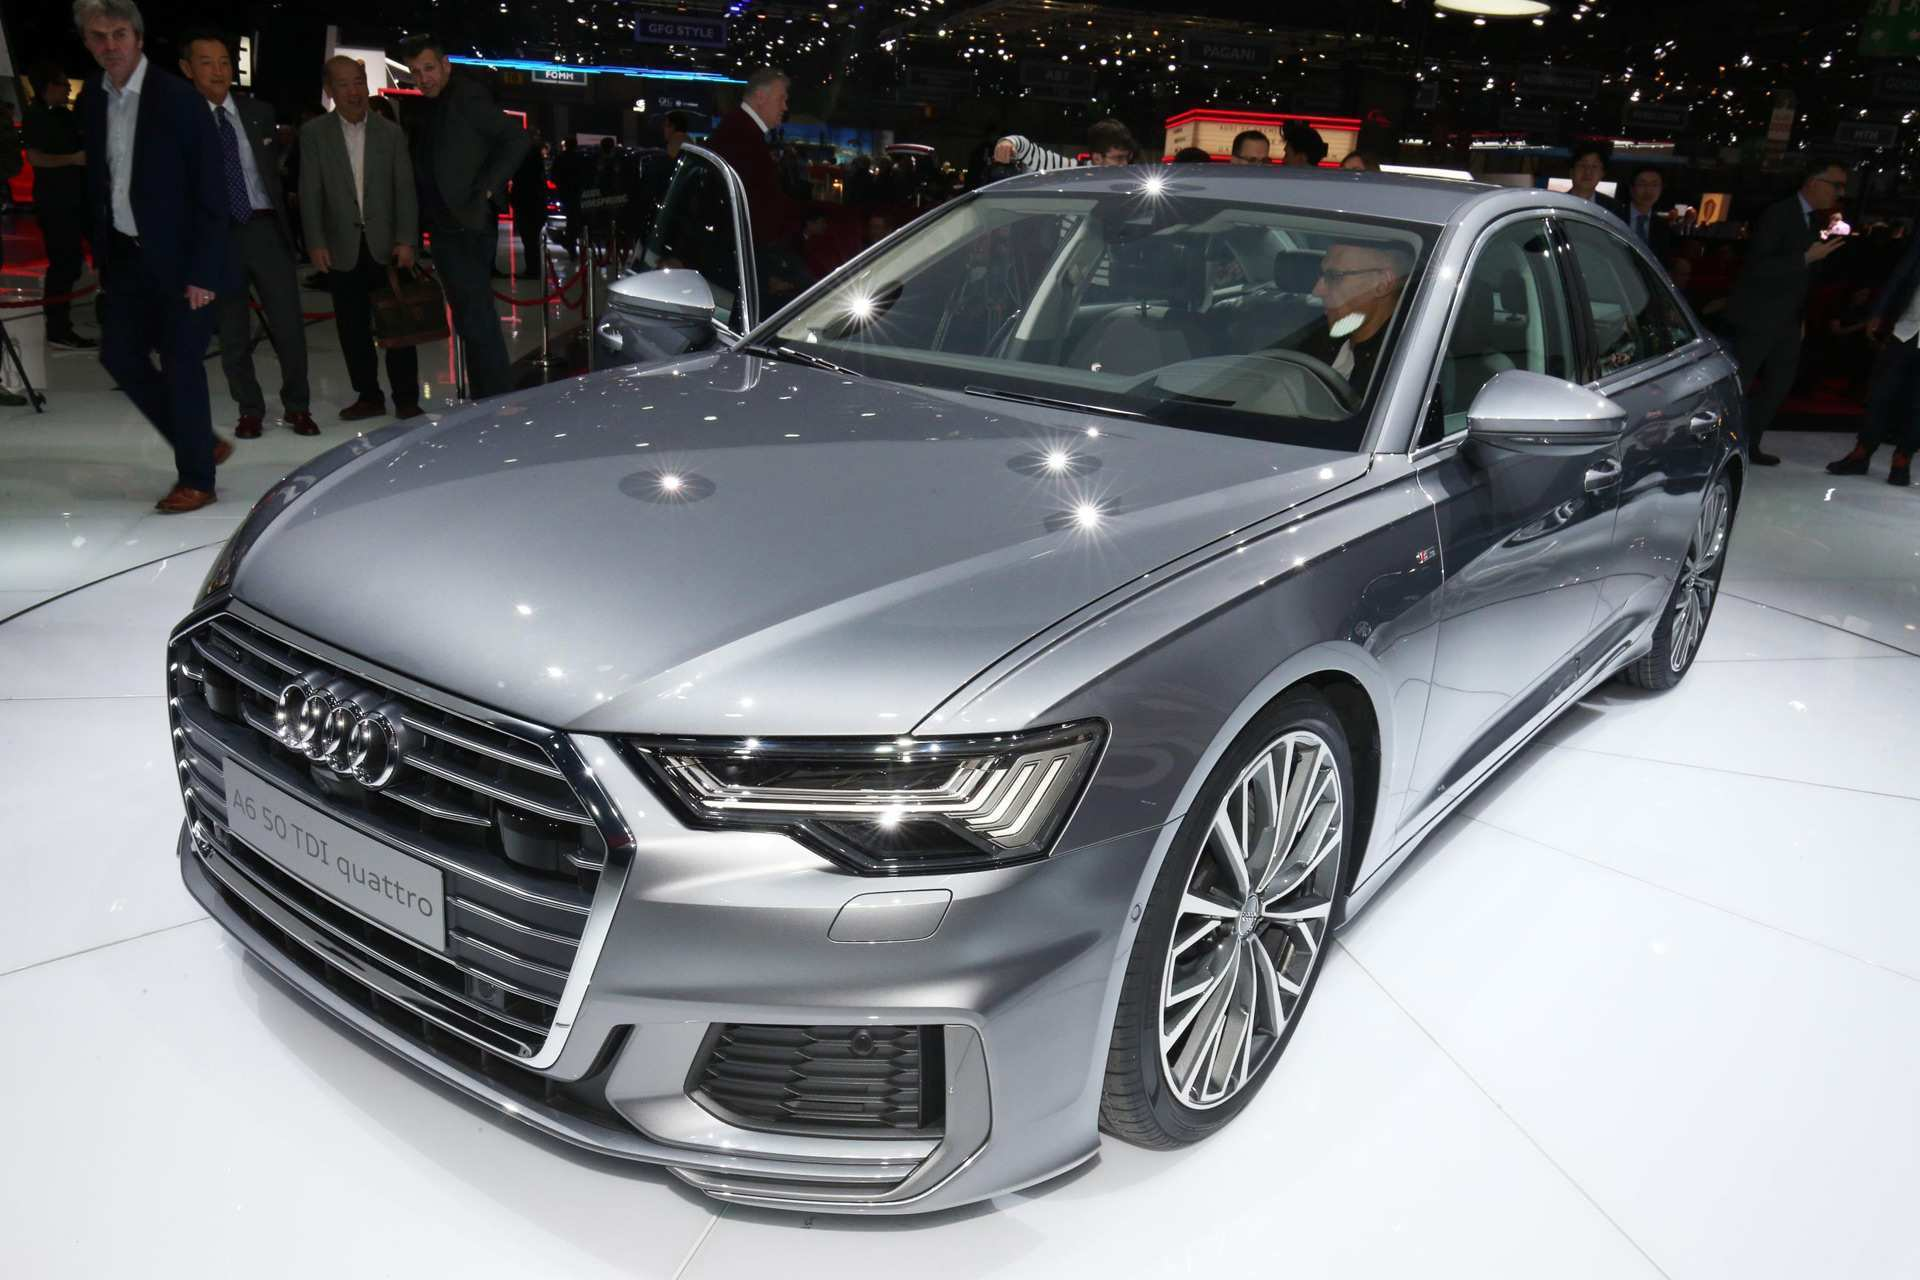 62 All New 2020 Audi A6 Price And Review